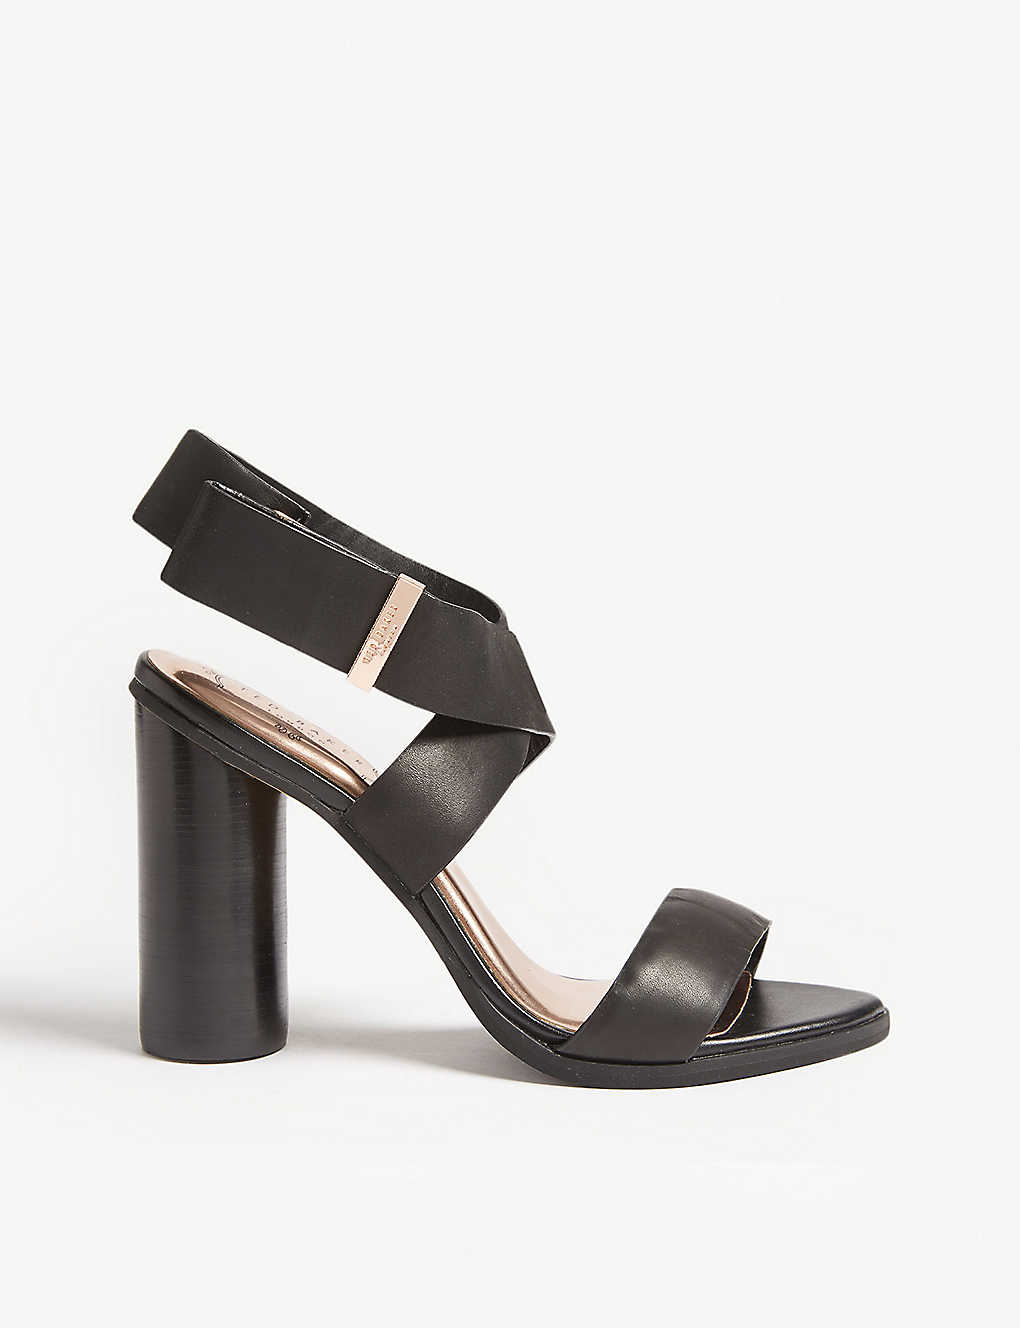 7184bdac570d TED BAKER - Meila leather strappy sandals